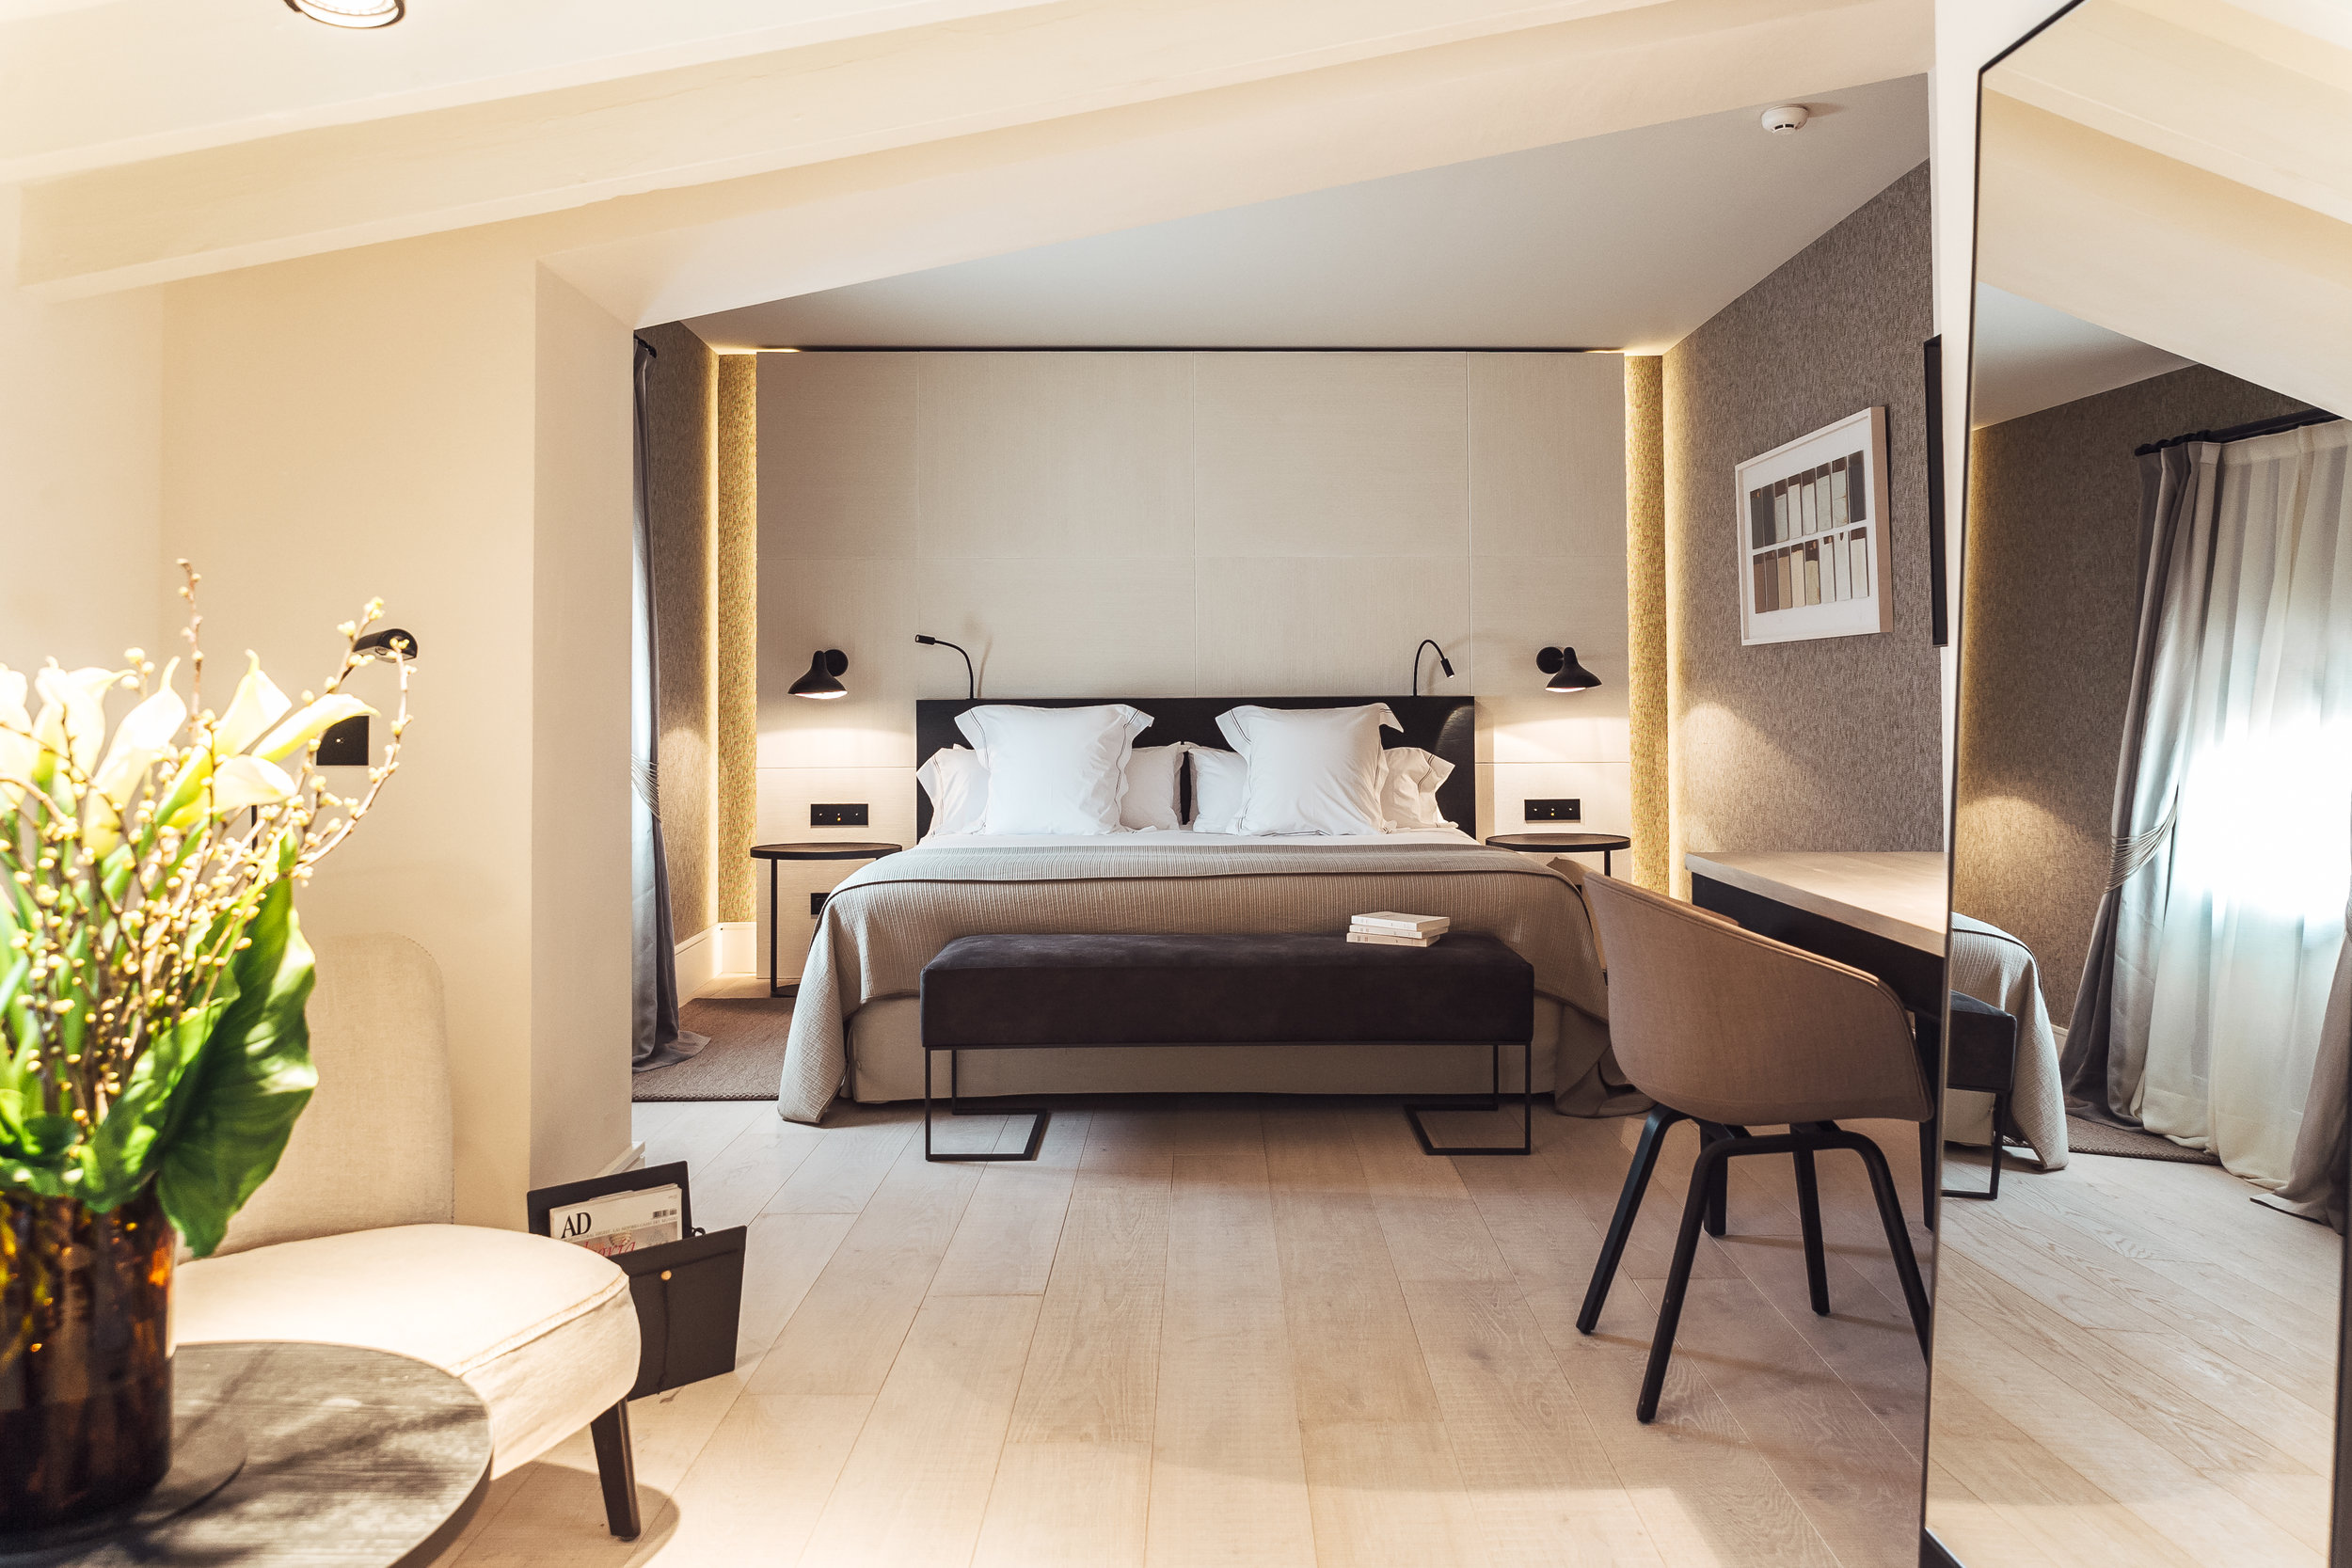 Sant Francesc has been renovated to provide guests with the ultra modern comforts and intimacy.